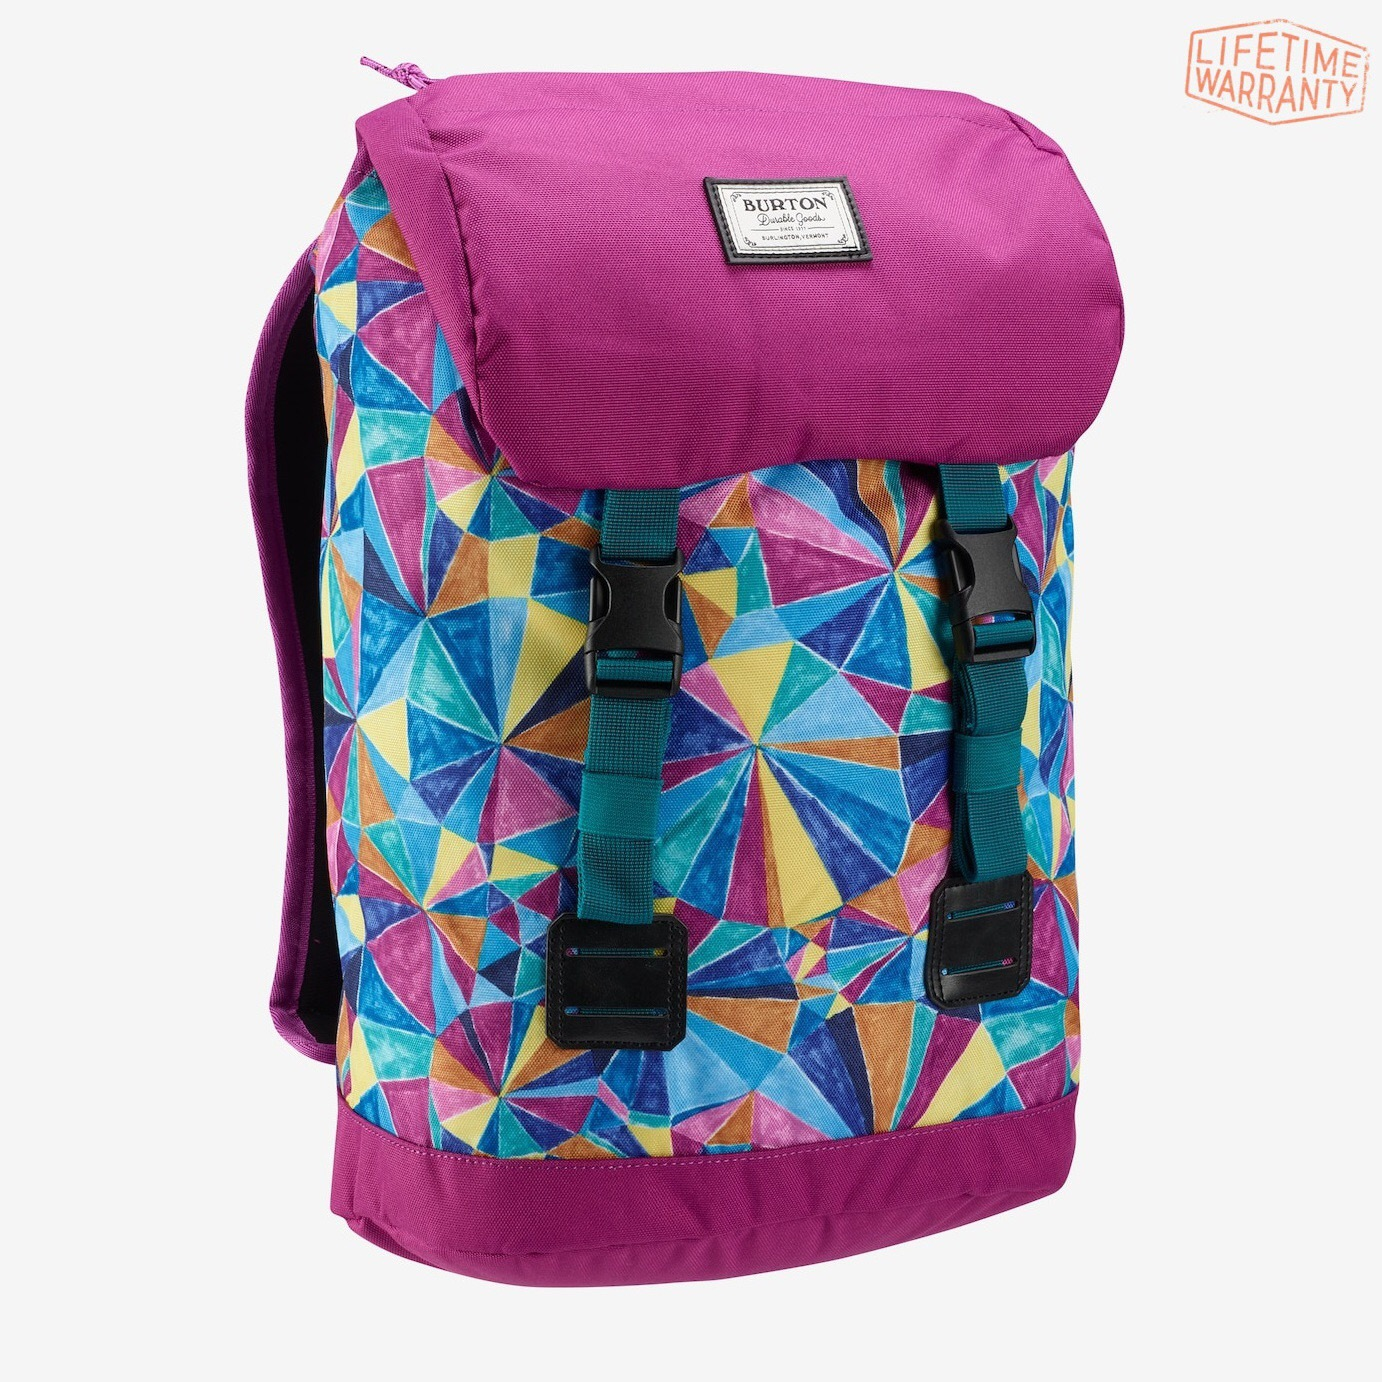 Рюкзак BURTON YOUTH TINDER PACK Polka Diamond Print